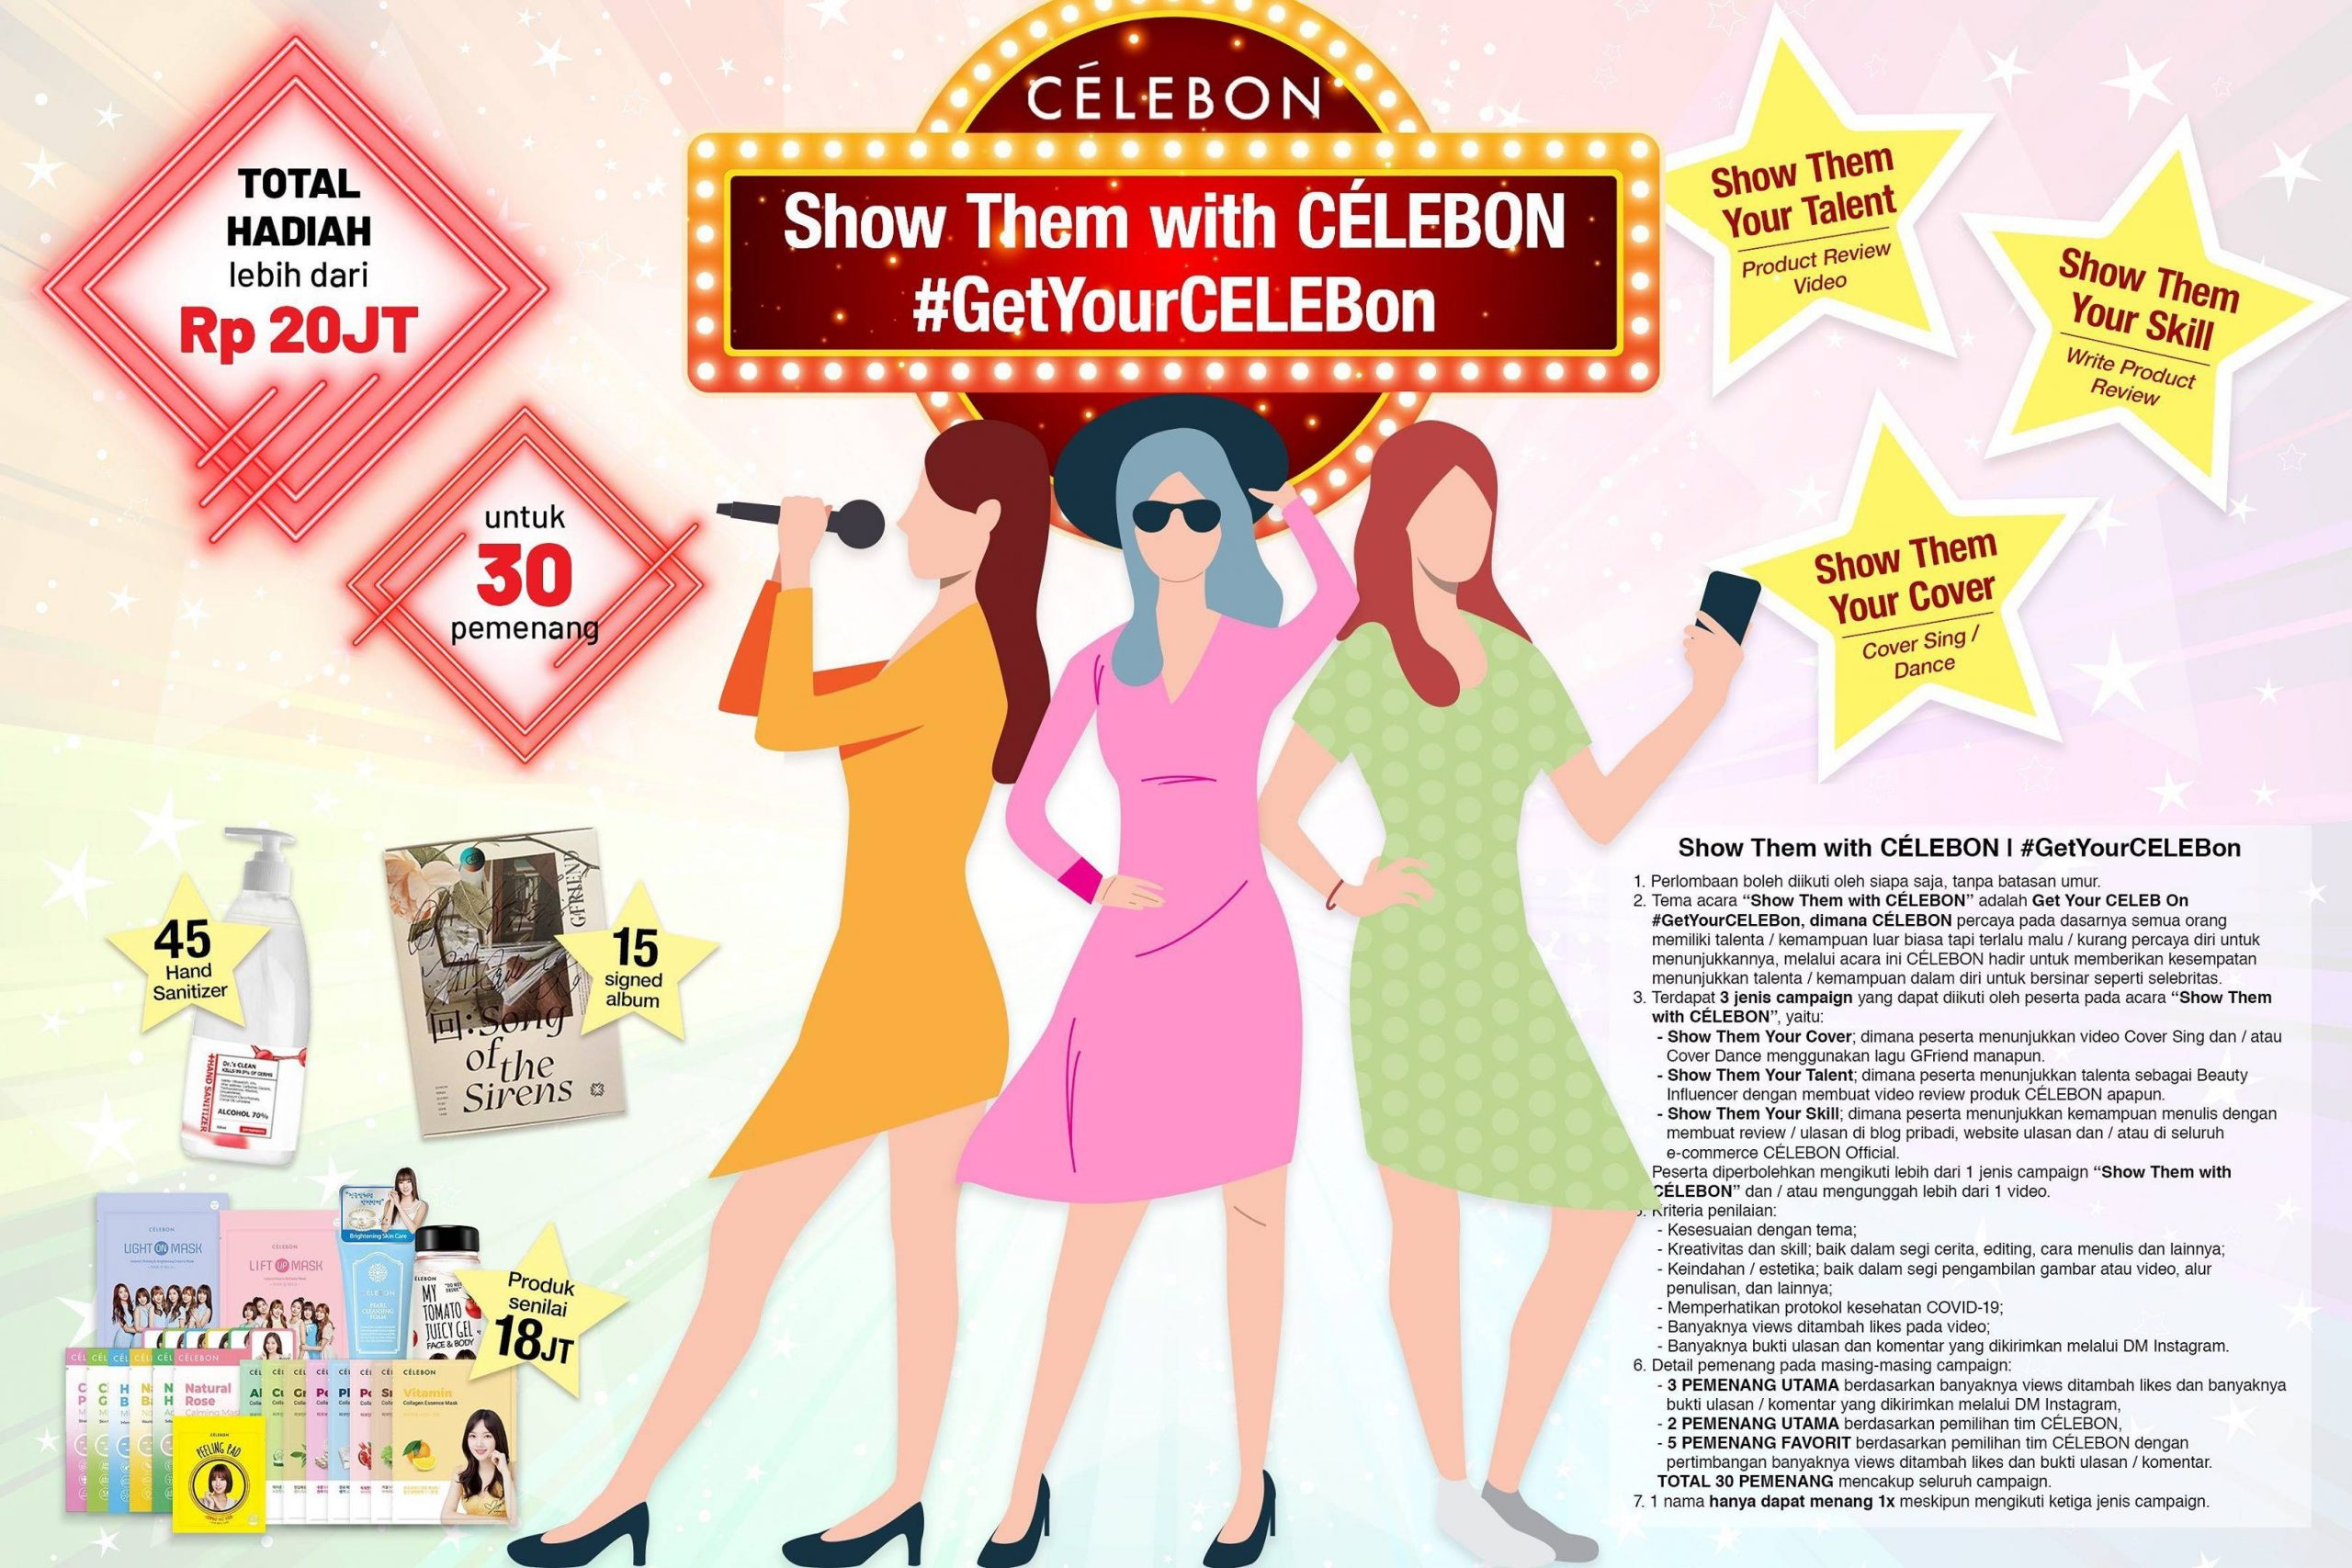 Show Them with CÉLEBON #GetYourCELEBon